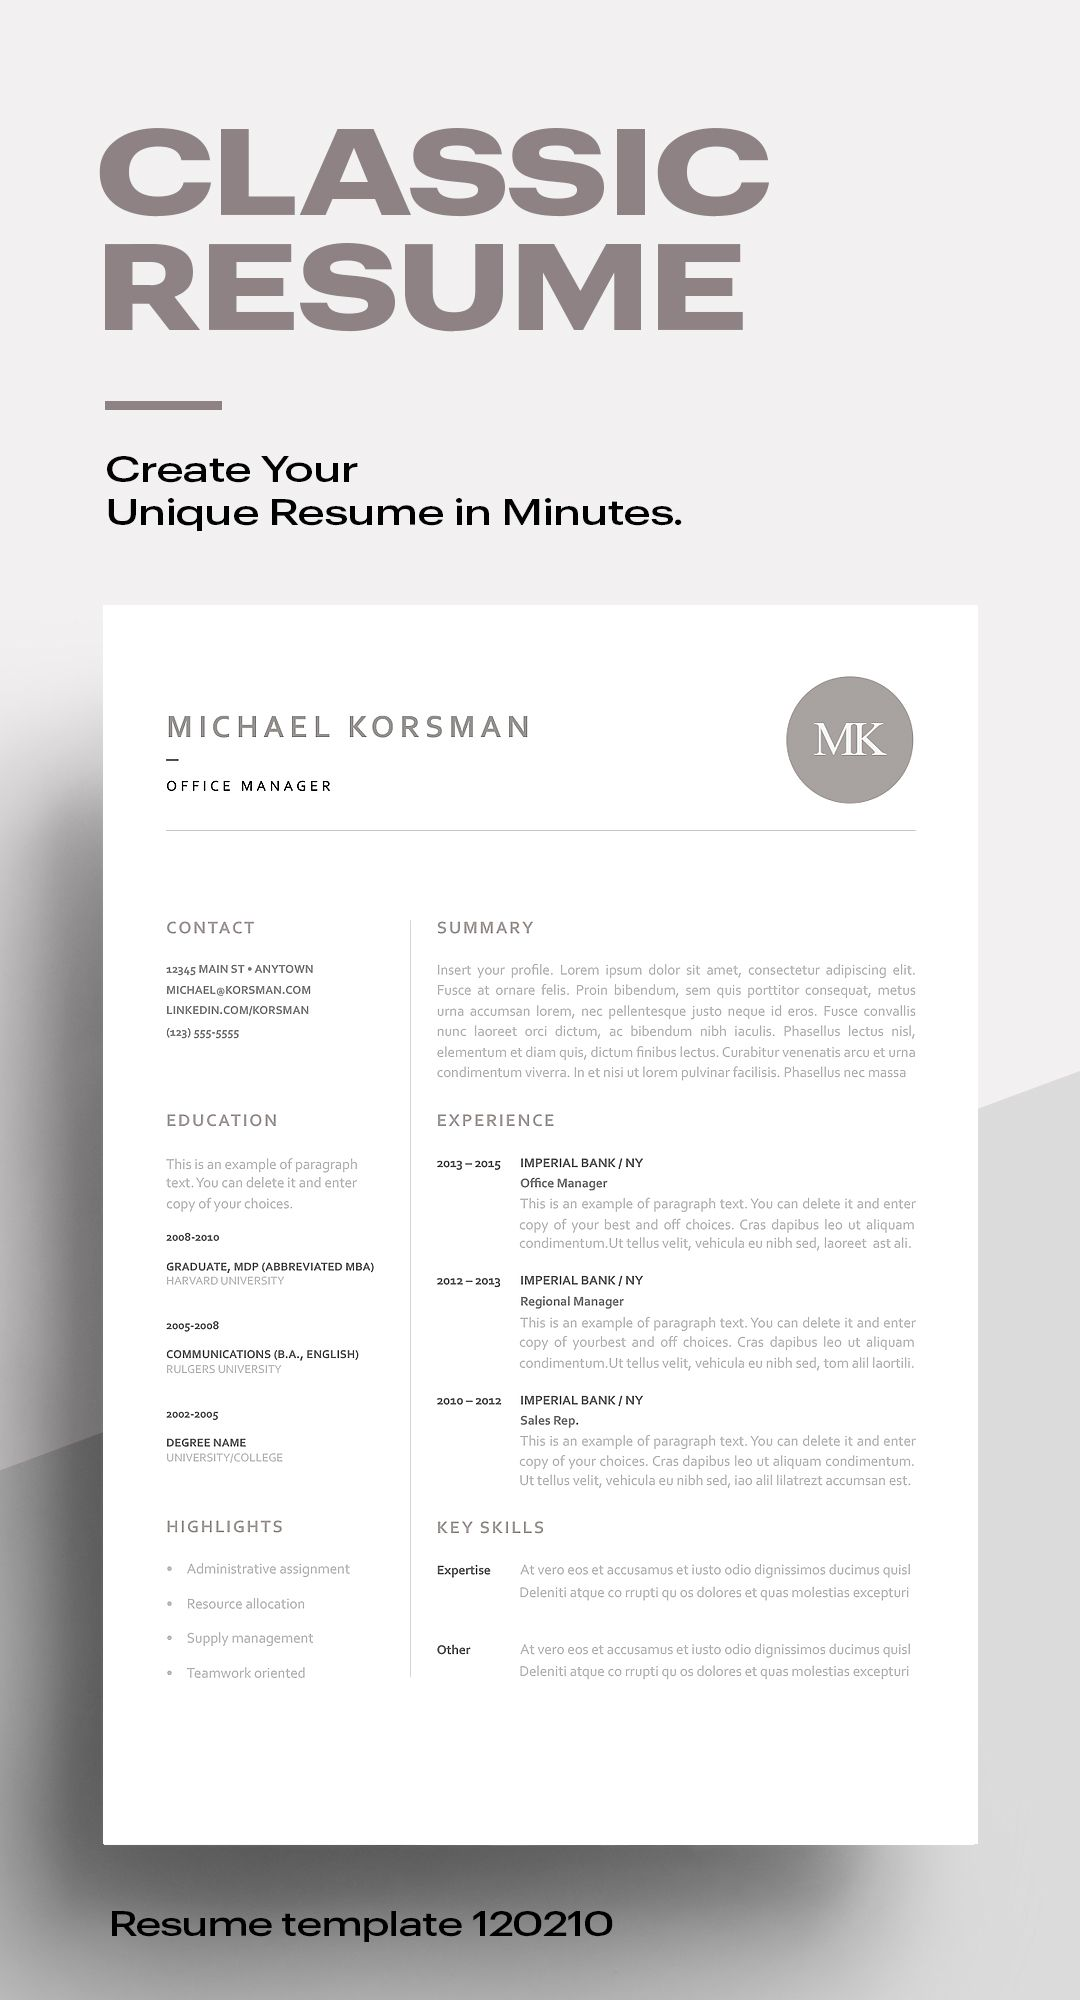 Make a great first impression with a classic resume